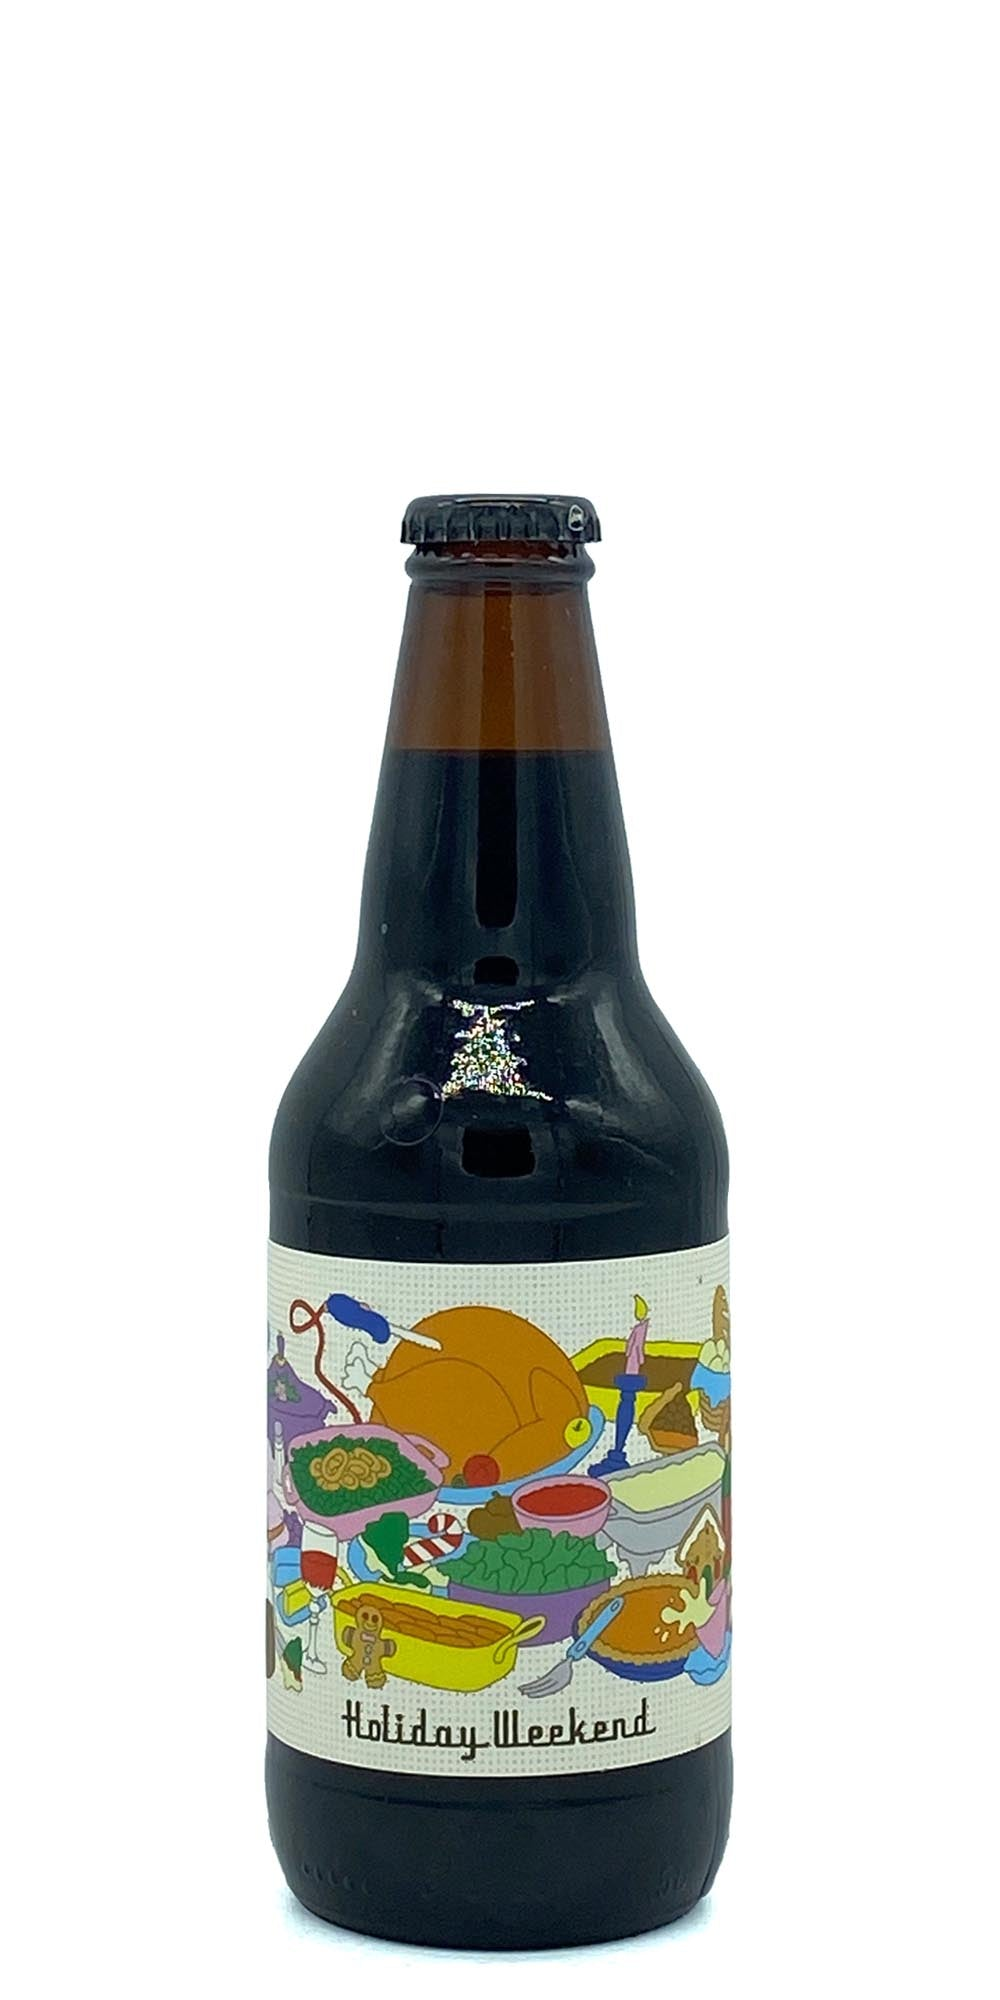 Prairie Artisan Ales - Holiday Weekend - Drikbeer - Order Craft Beer Online